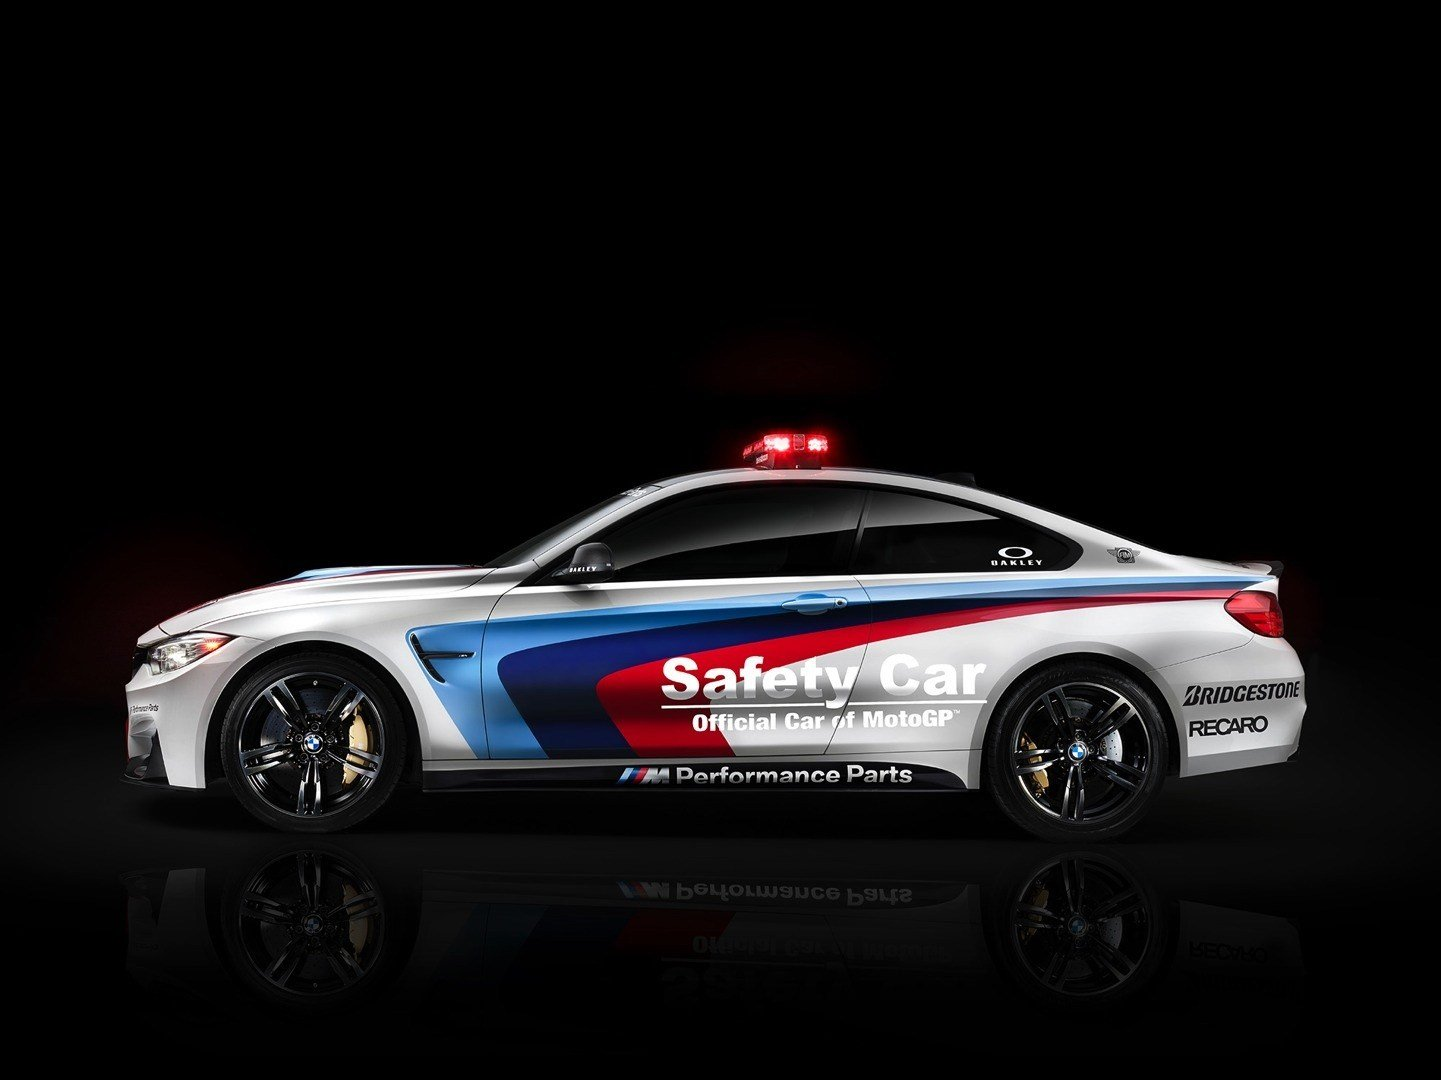 Latest Bmw M4 Coupe Motogp Safety Car Details Revealed Free Download